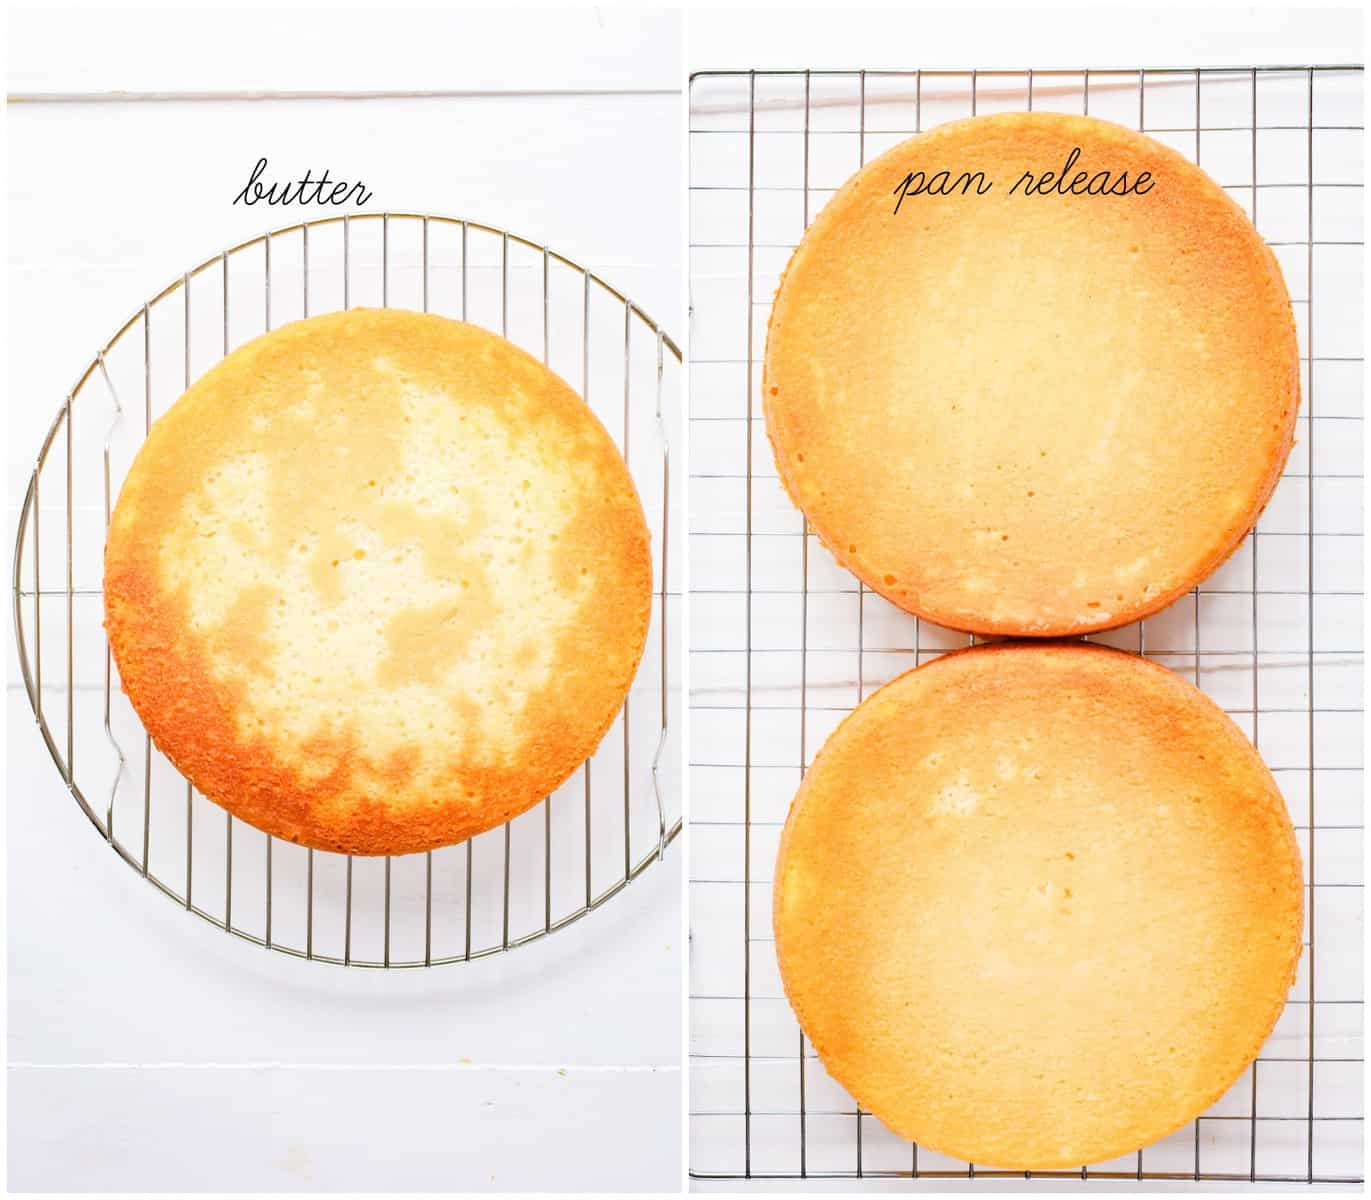 butter and flour vs pan release and flour